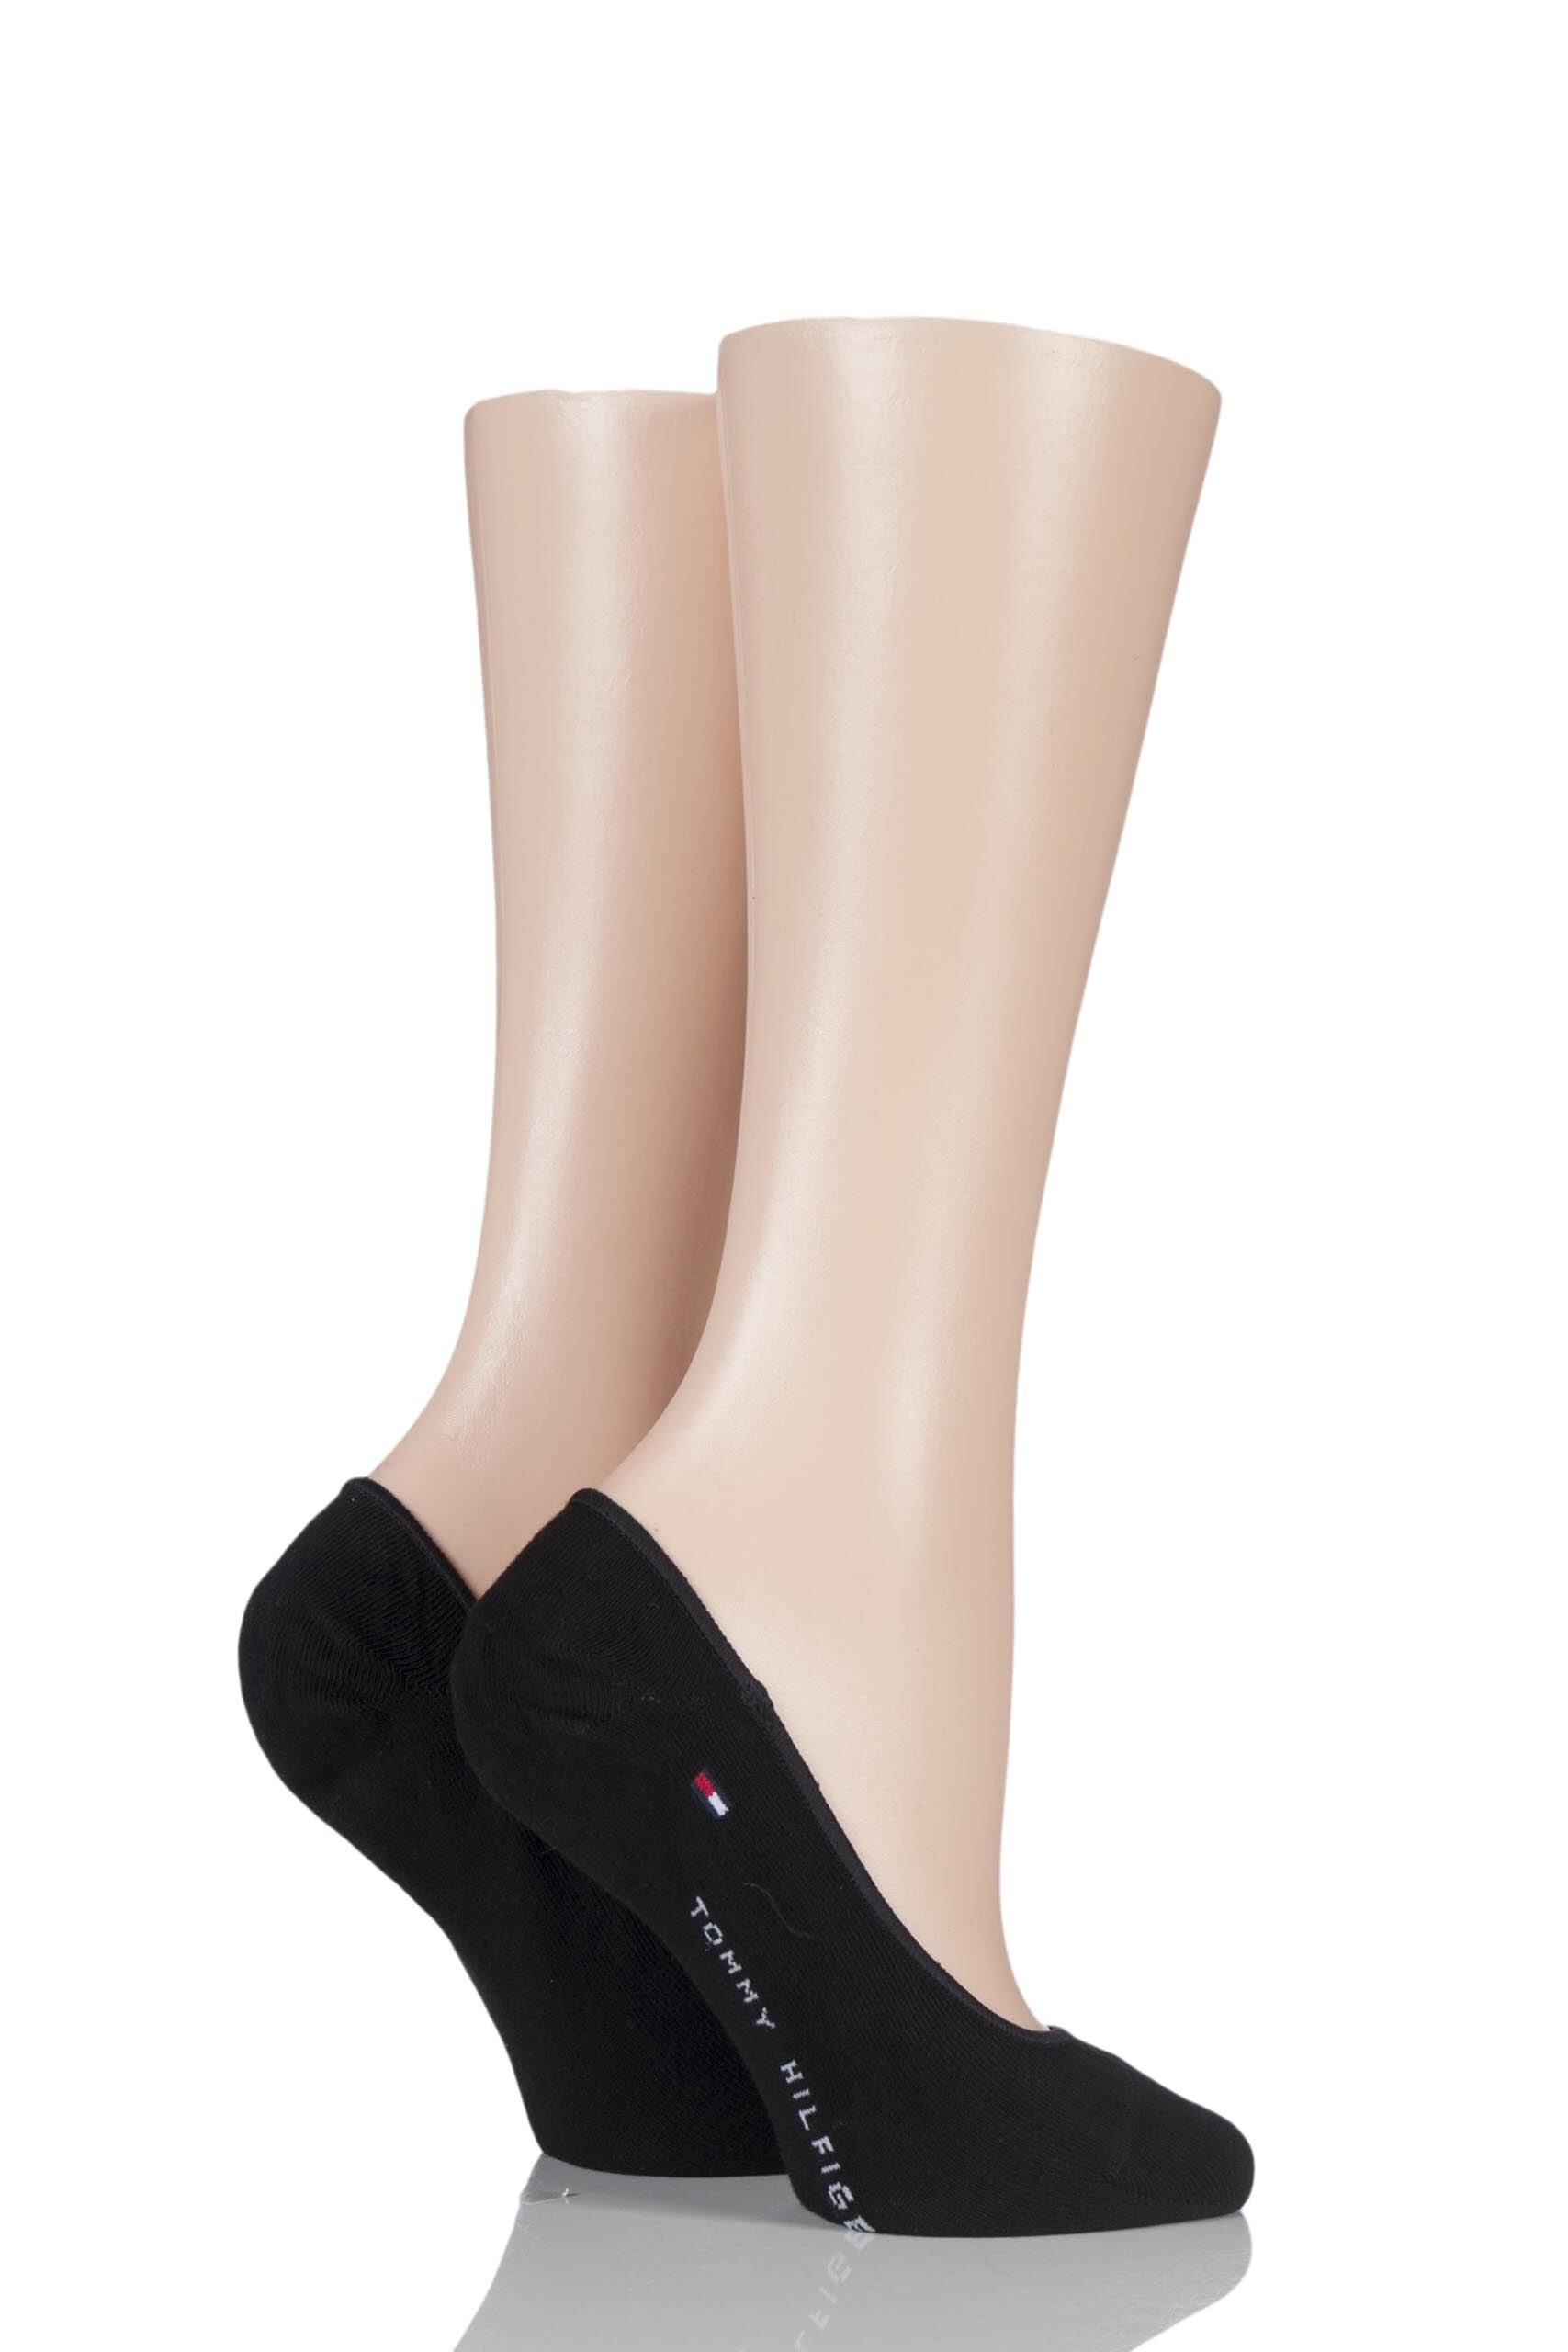 Image of 2 Pair Black Plain Cotton Invisible Footie Socks Ladies 2.5-5 Ladies - Tommy Hilfiger